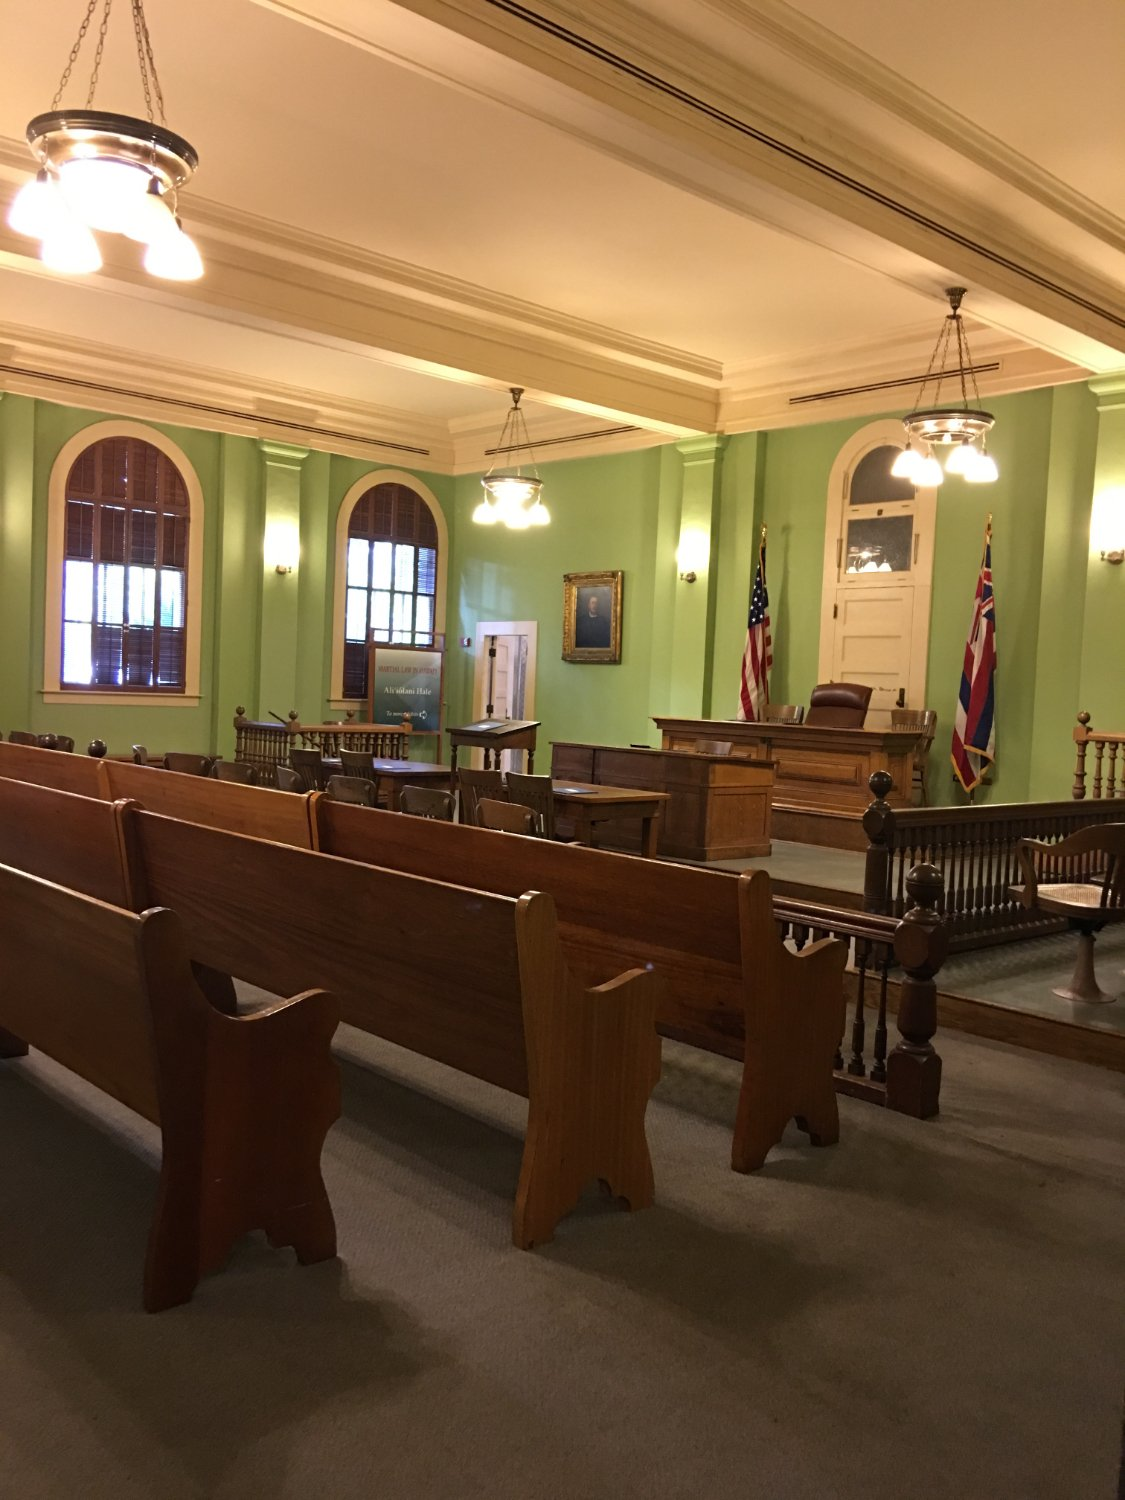 The Hawaii Courthouse, Must See for educational value